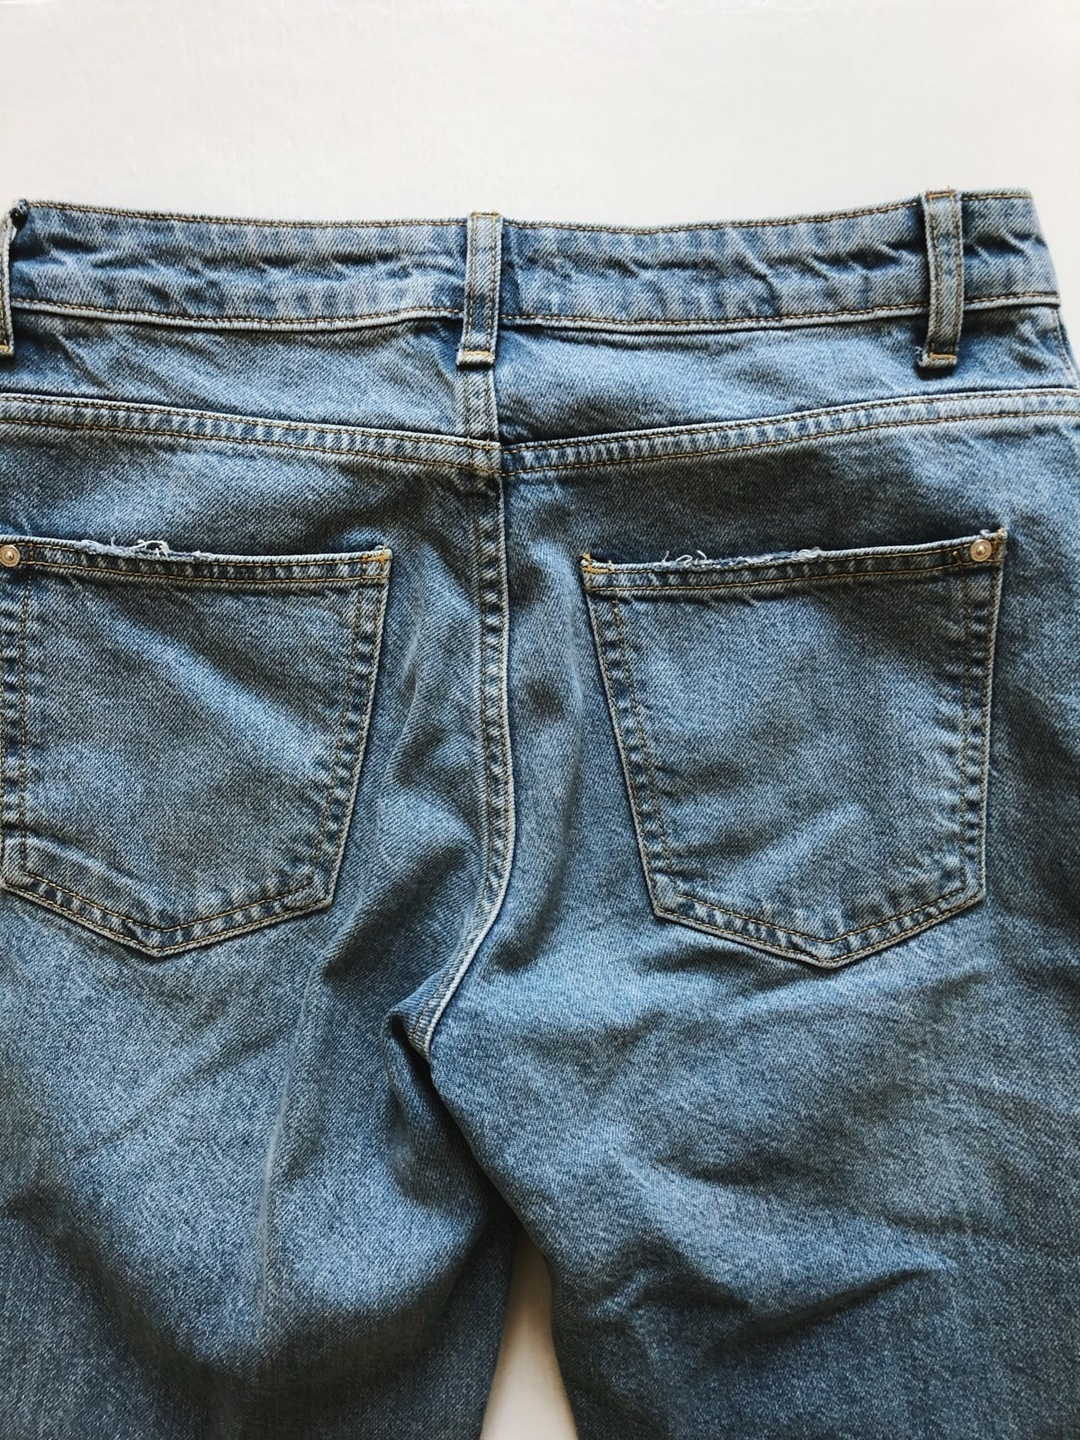 Damers bukser og jeans - MANGO photo 3